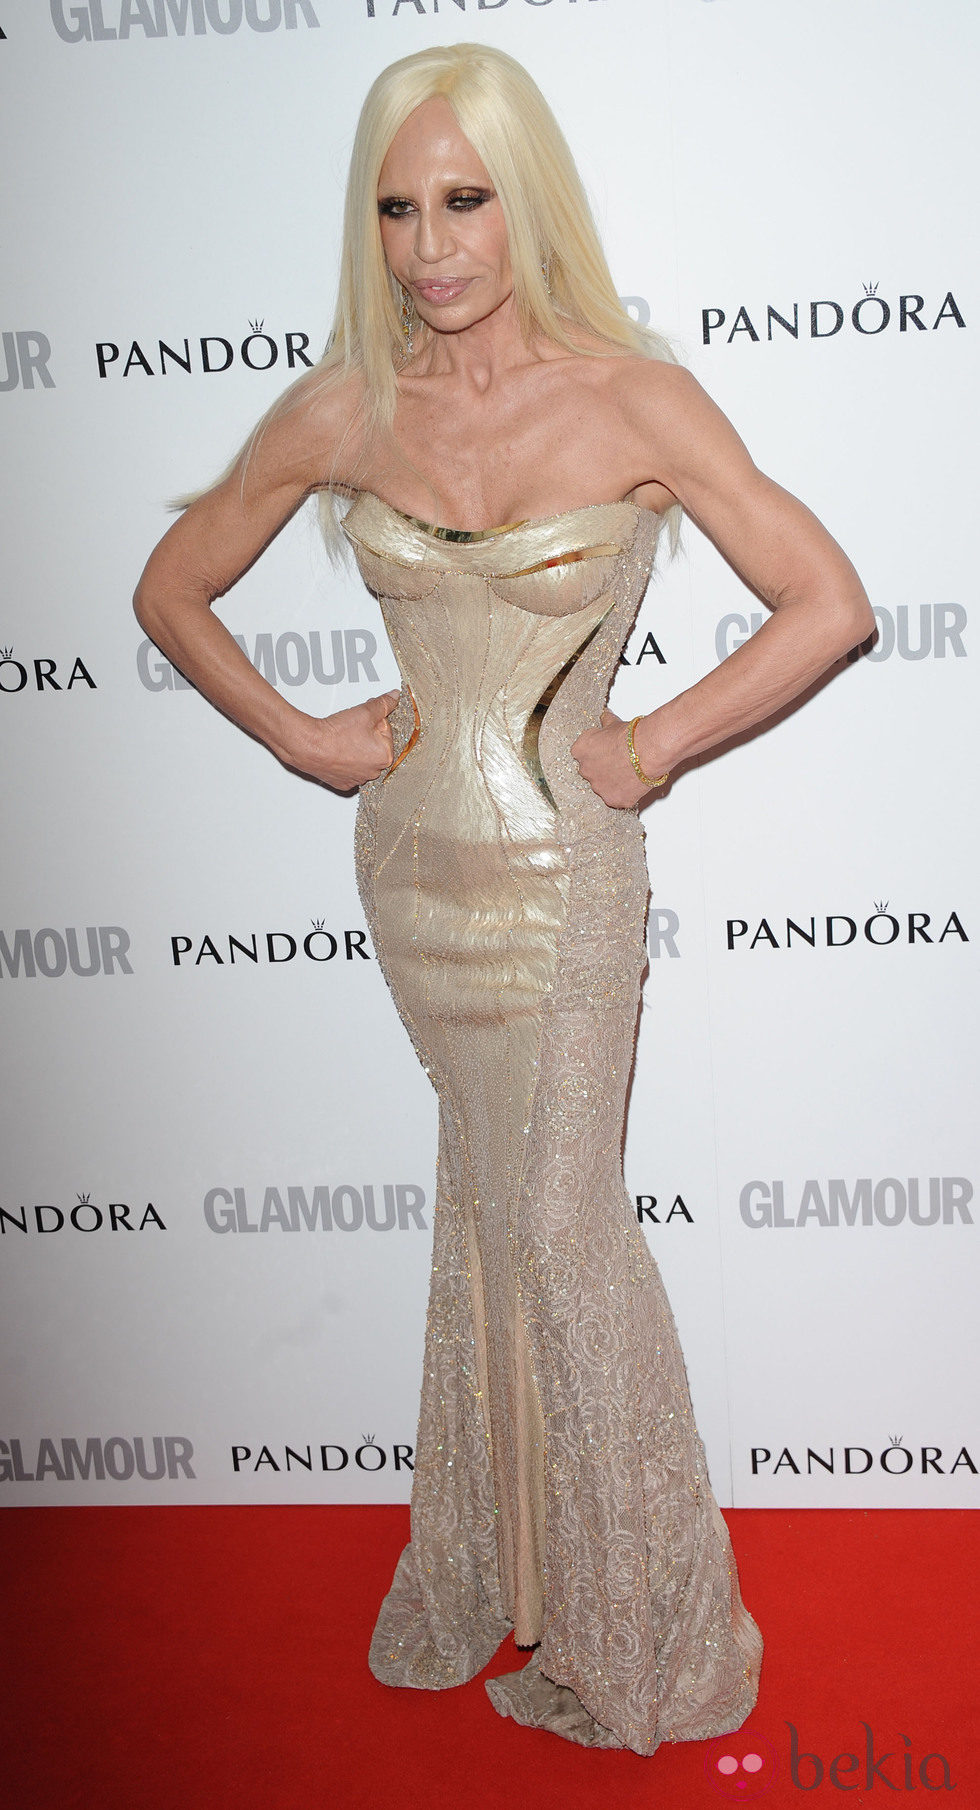 Donatella Versace en los Glamour Women of the Year Awards 2012 de Londres